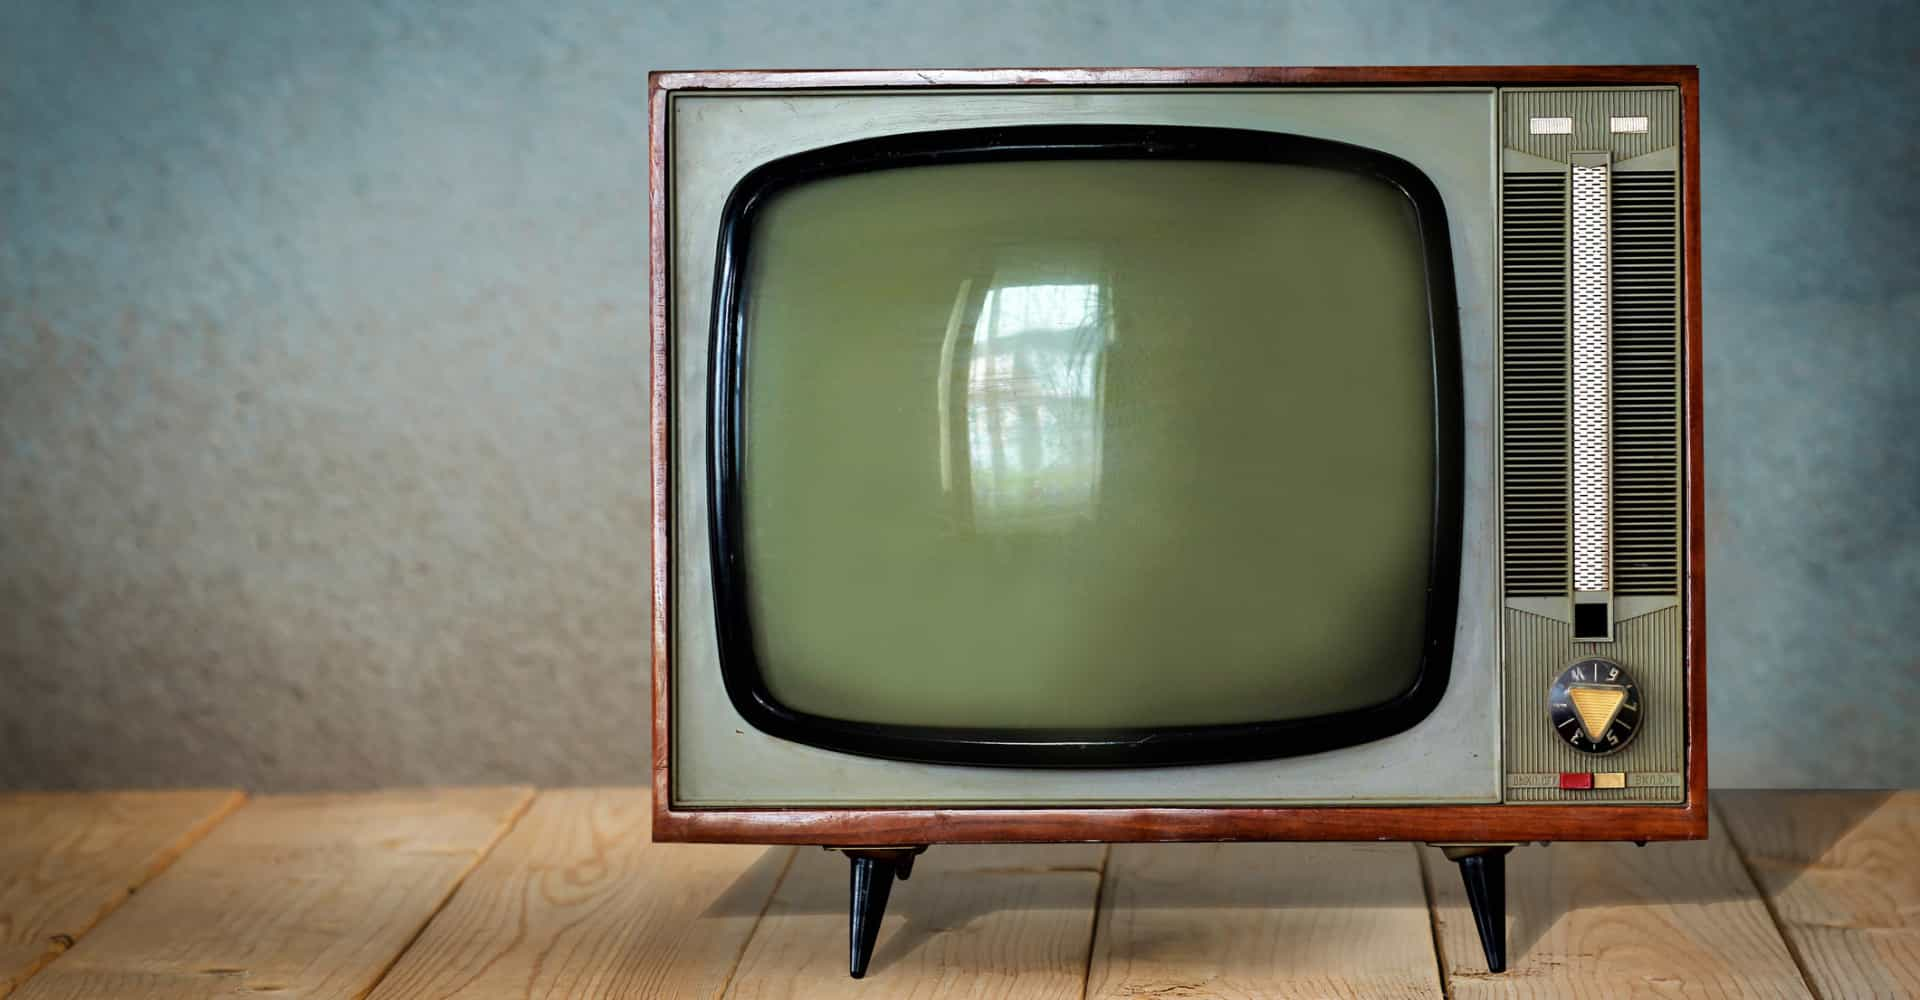 TV networks are now running fewer commercials